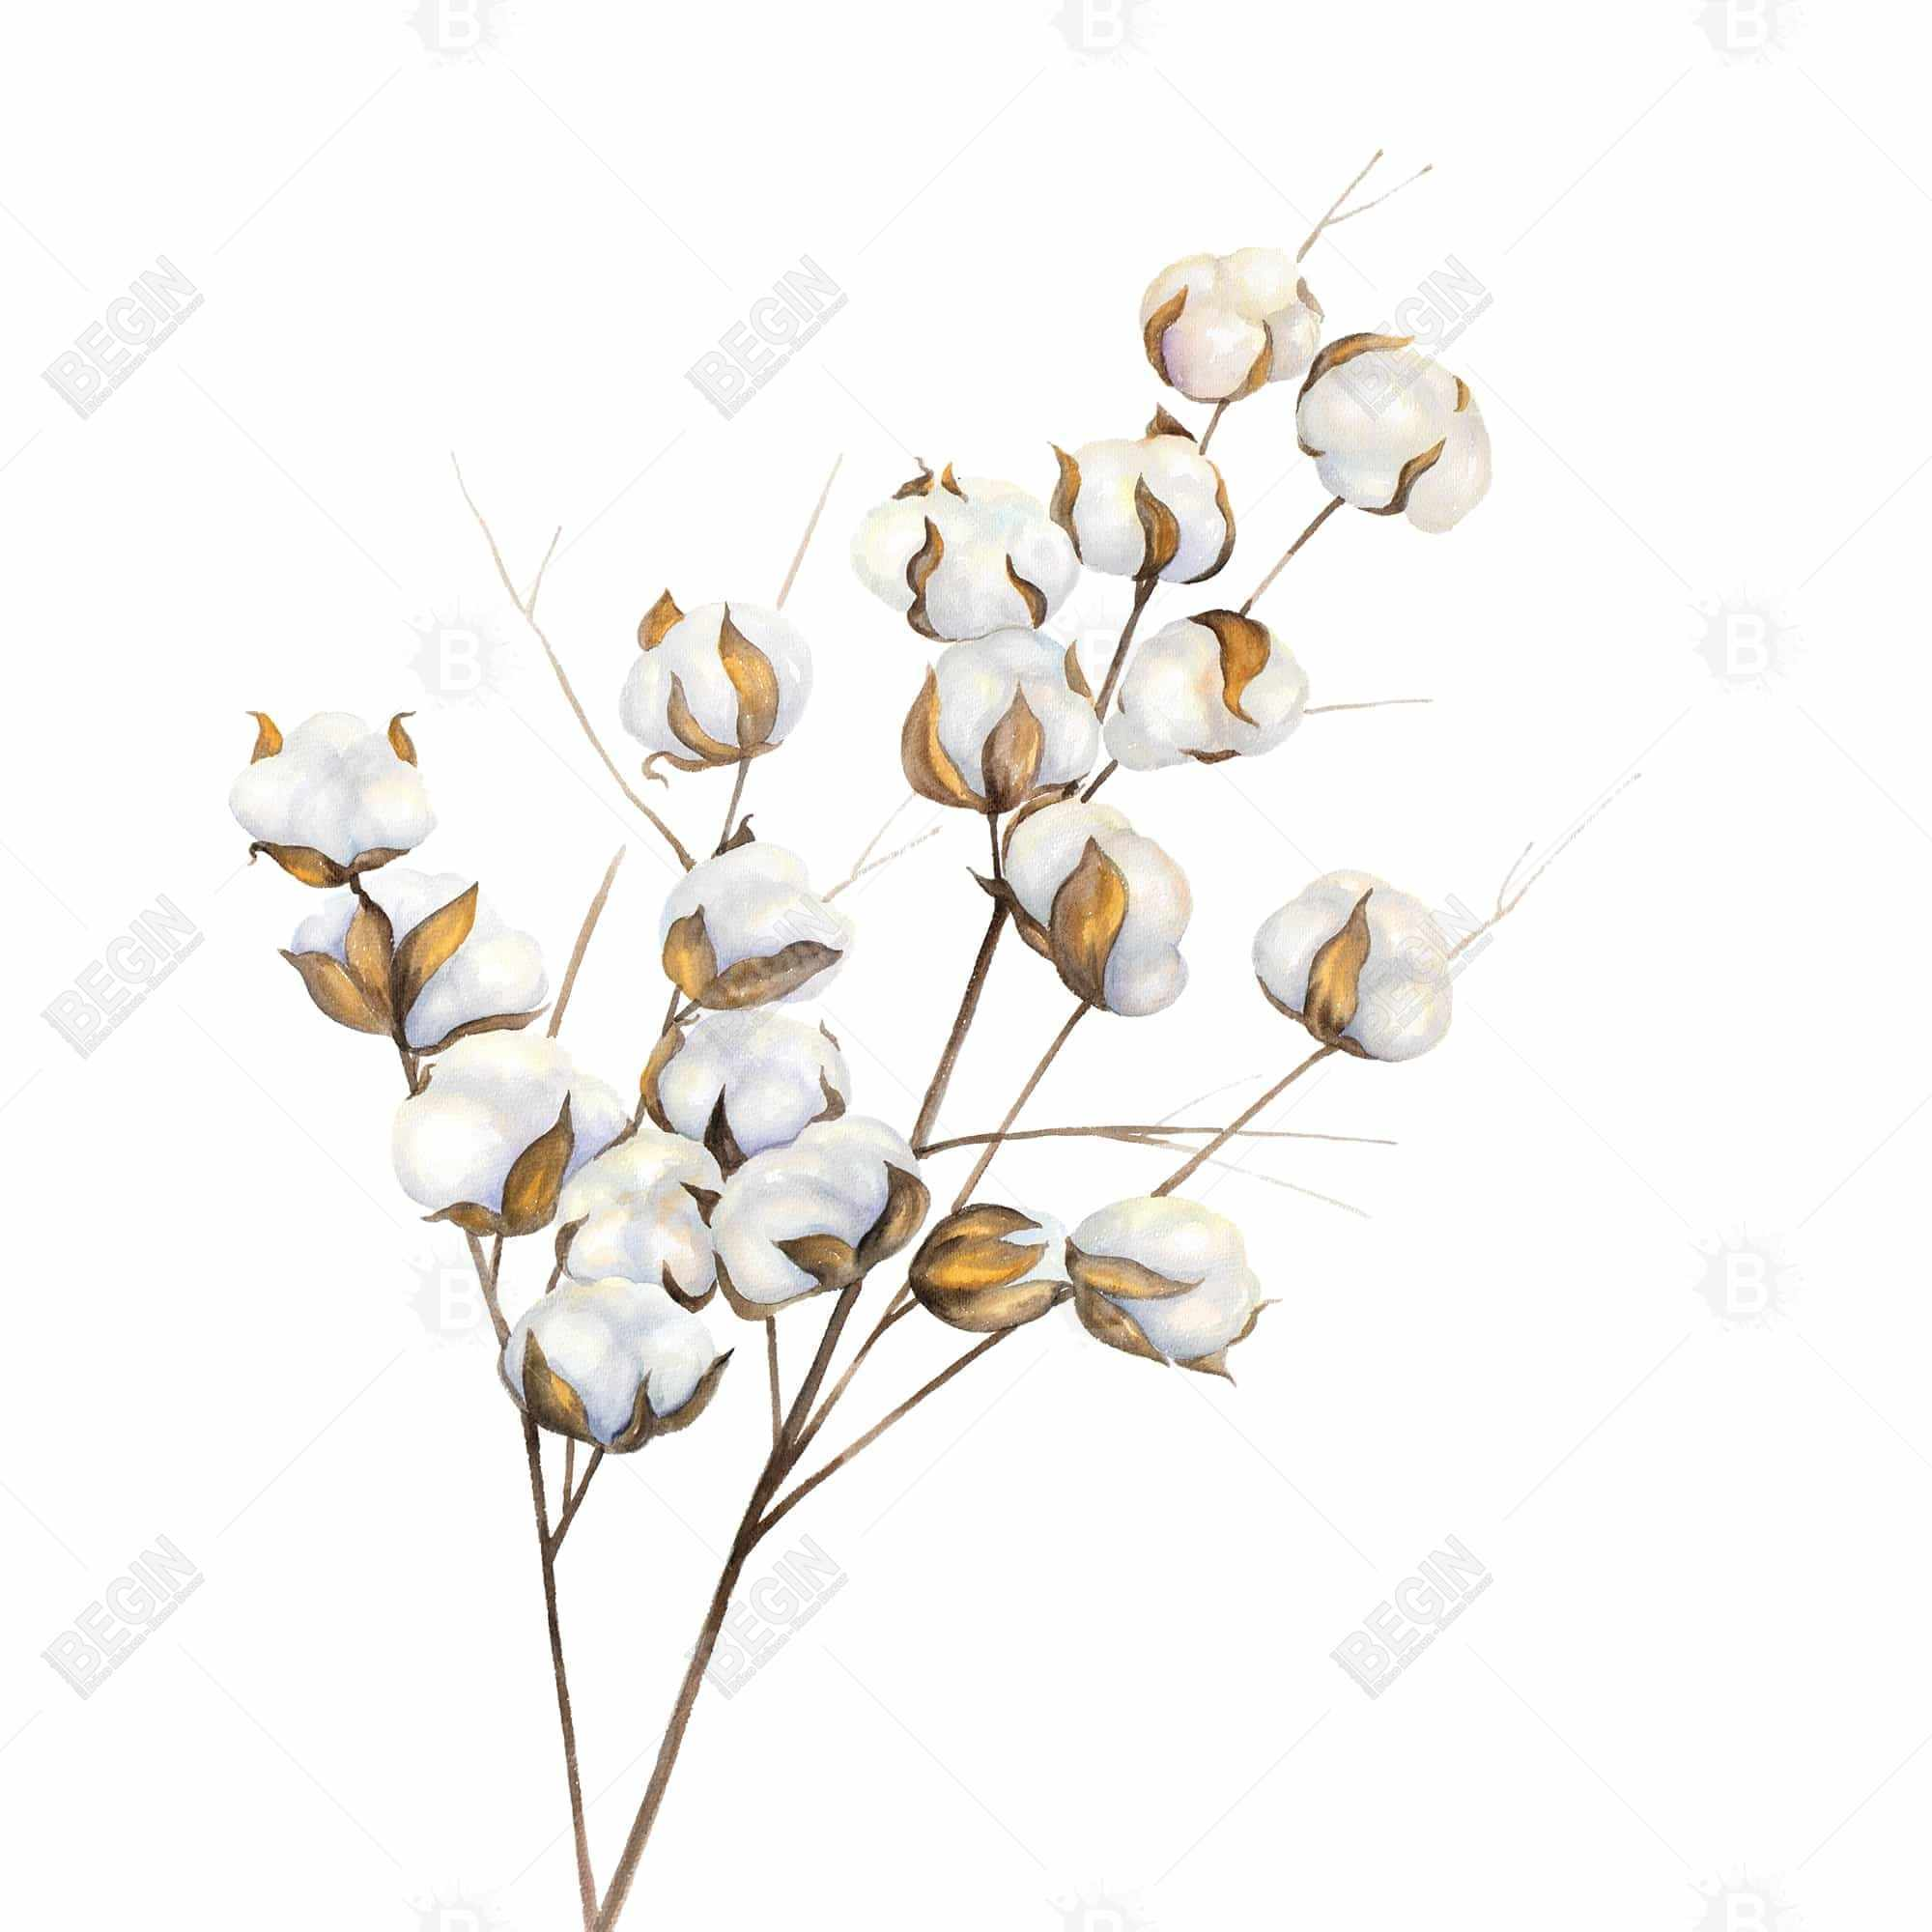 A branch of cotton flowers